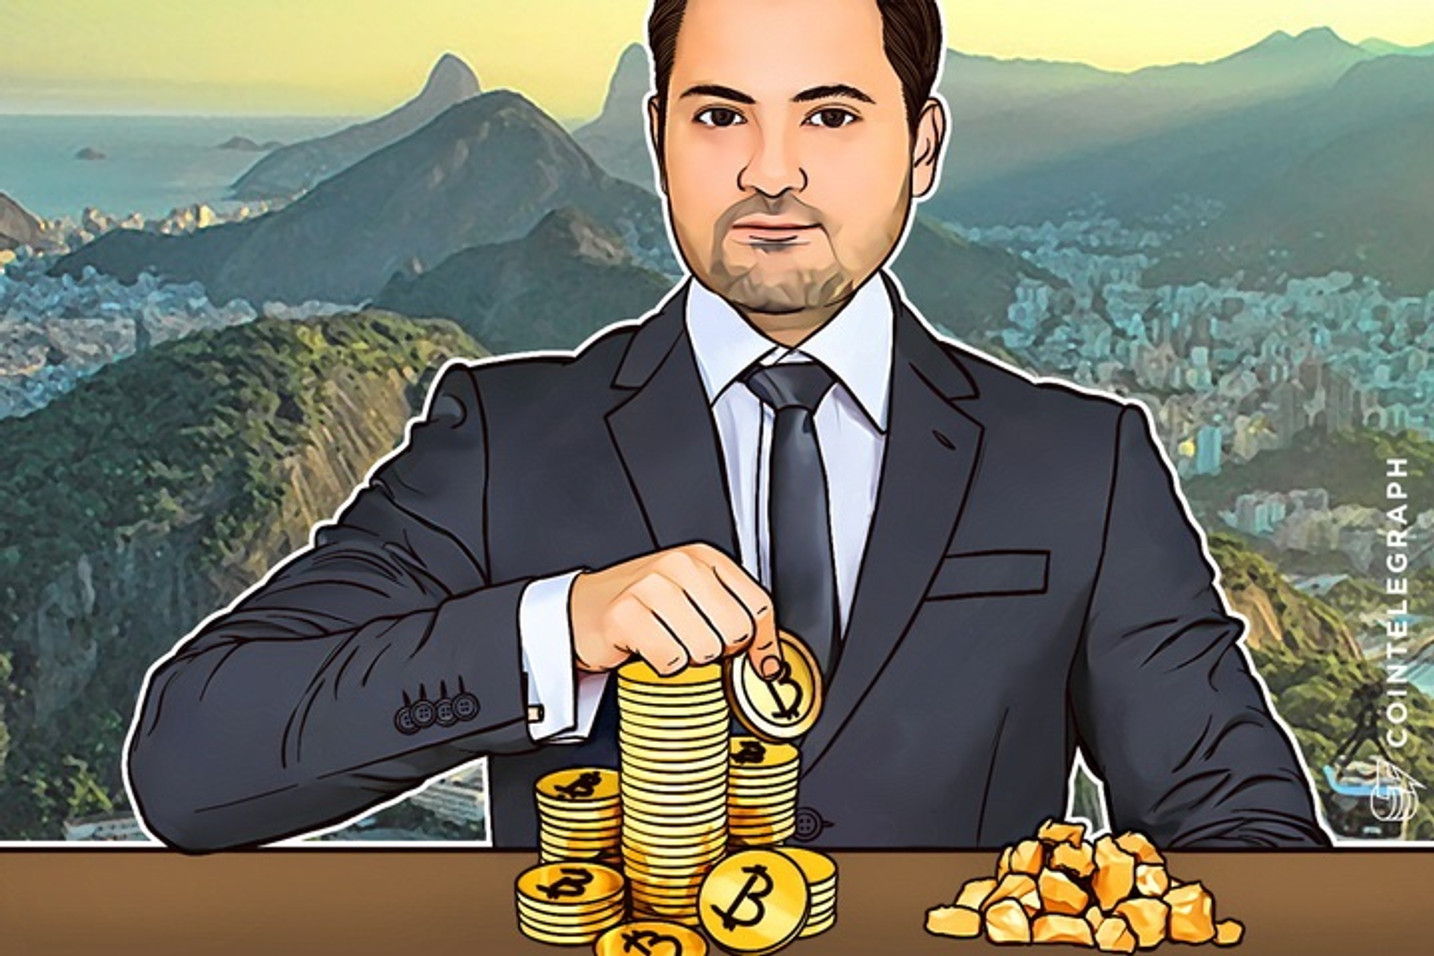 Brazil's Bitcoin Trade Grows Exceeding Gold, Its Banks Test Out Blockchain